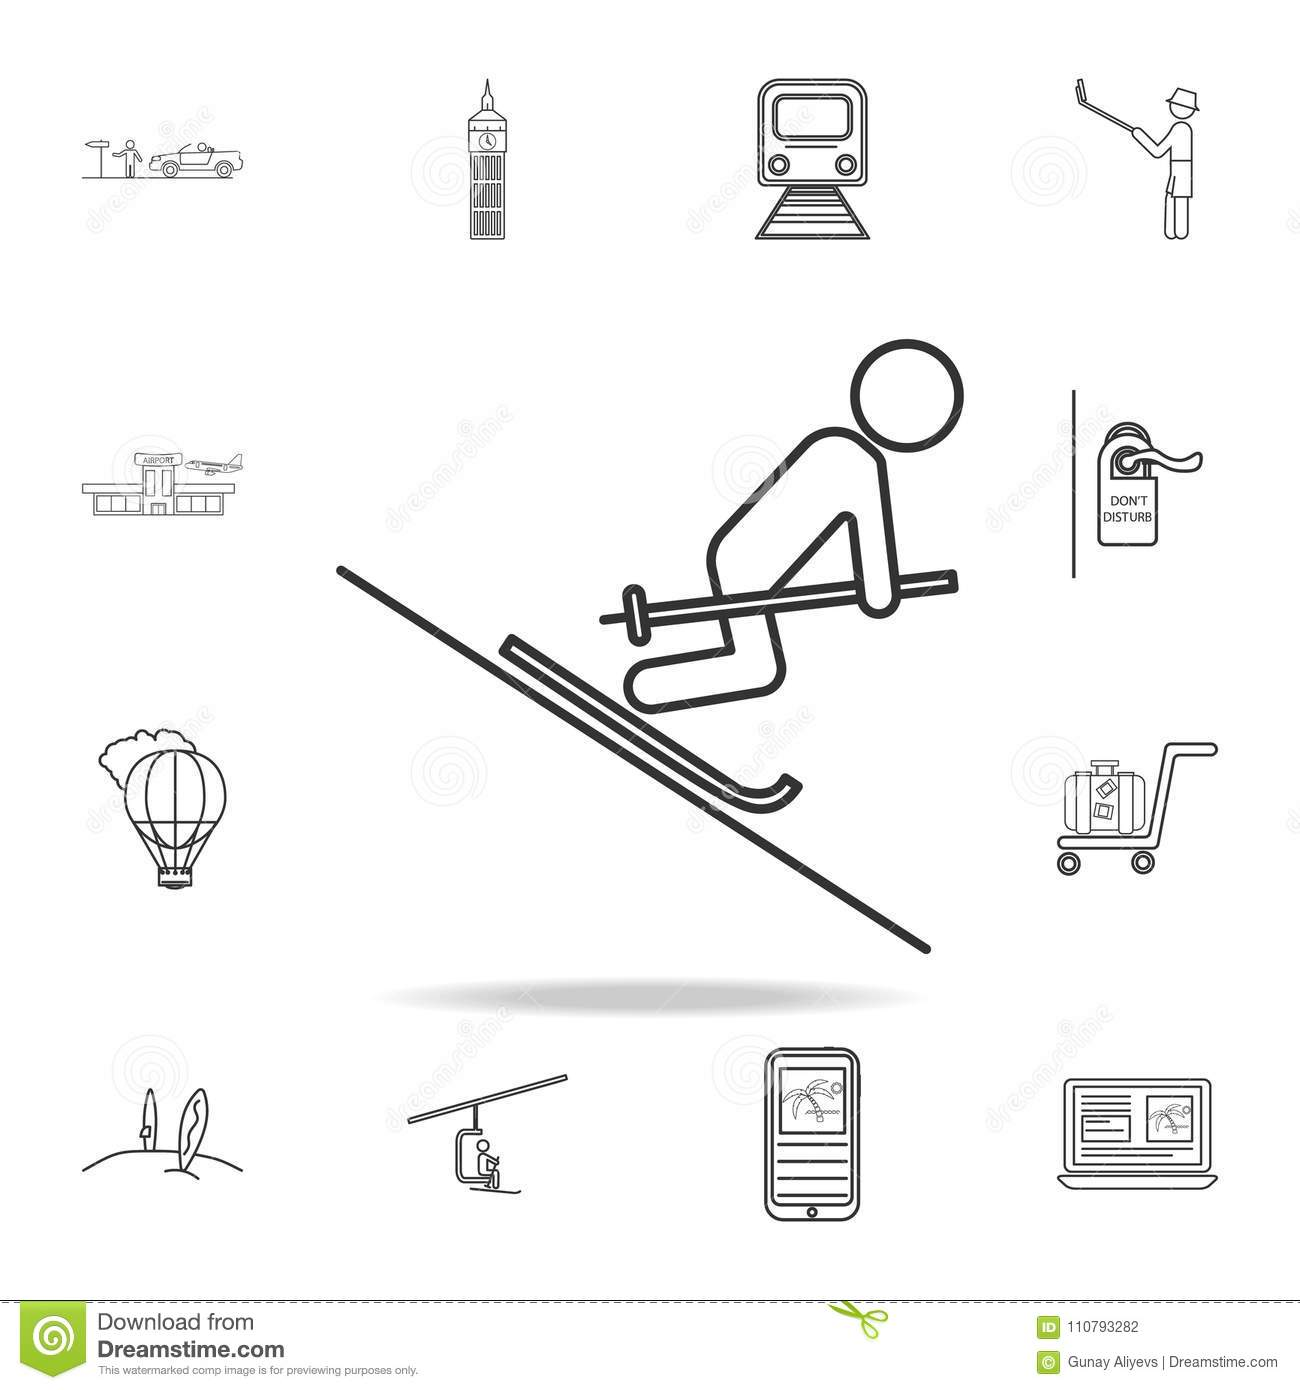 Simple Ski Diagram Electrical Wiring Diagrams 1998 Doo Online Mountain Skiing Line Icon Set Of Tourism And Leisure Icons Signs